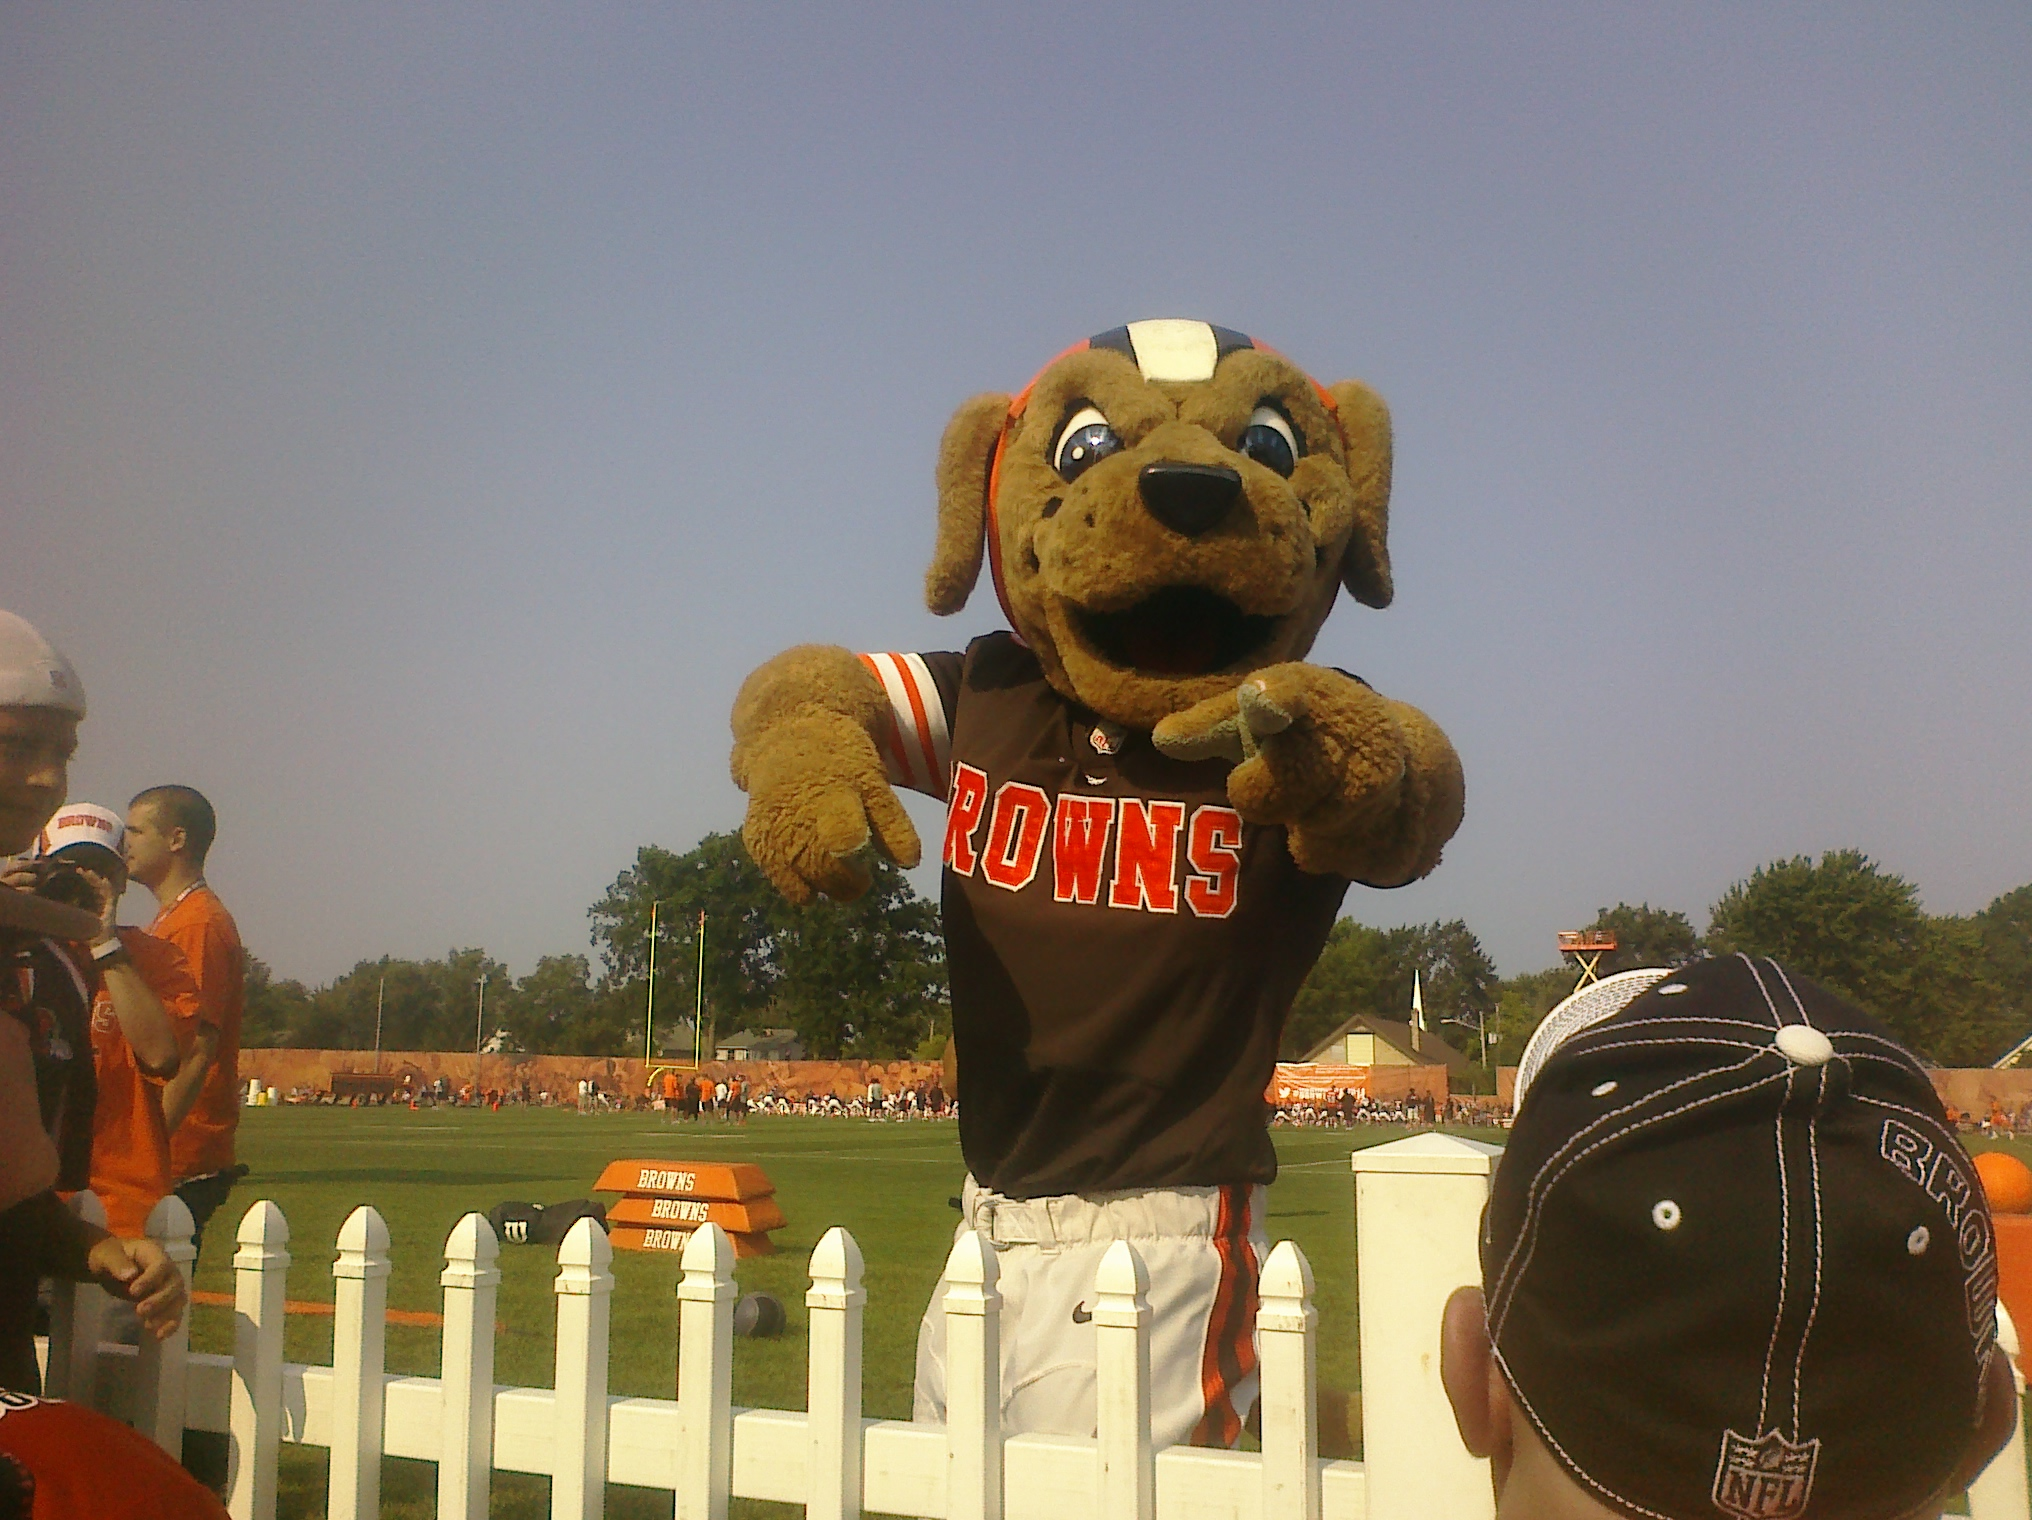 Chomps poses for my camera at Day 6 of Cleveland Browns training camp.